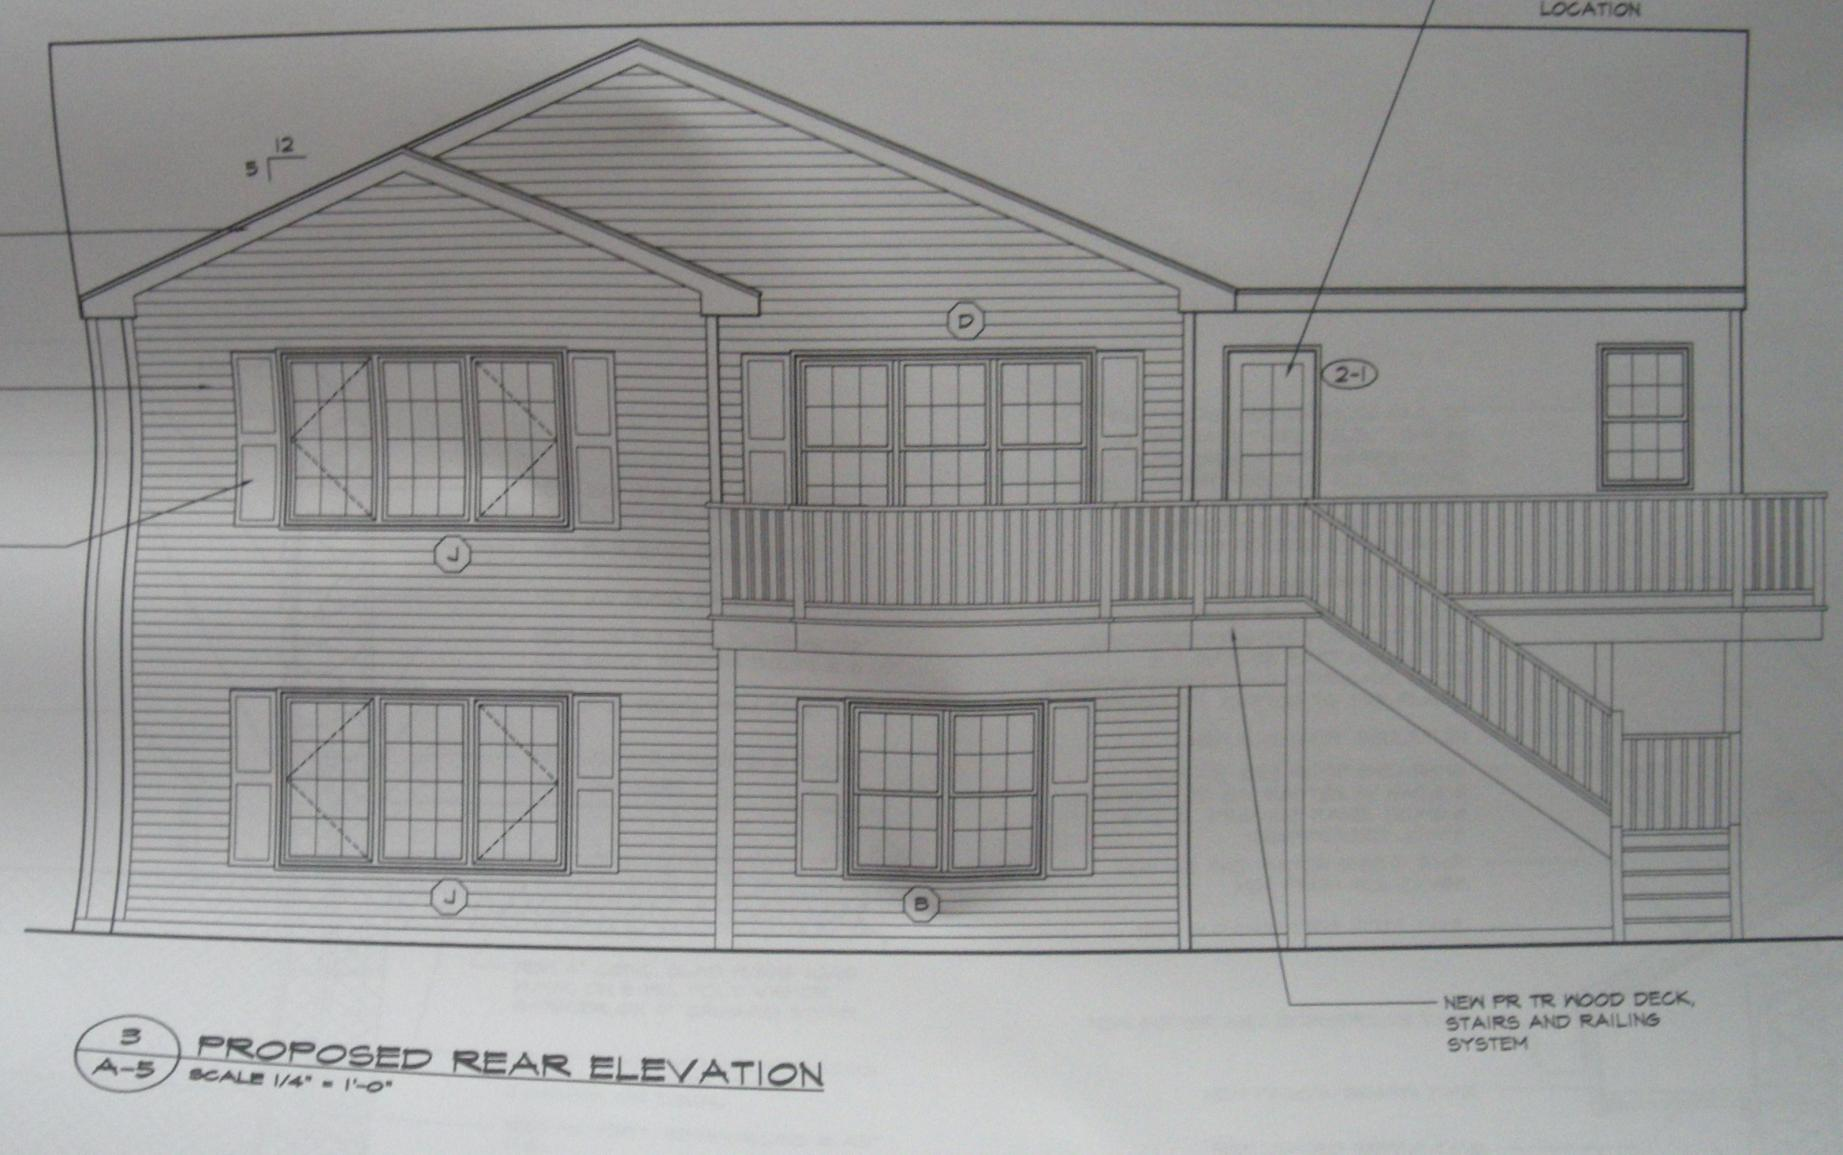 Bathroom Addition Plans - Affordable personal home with bathroom addition plans